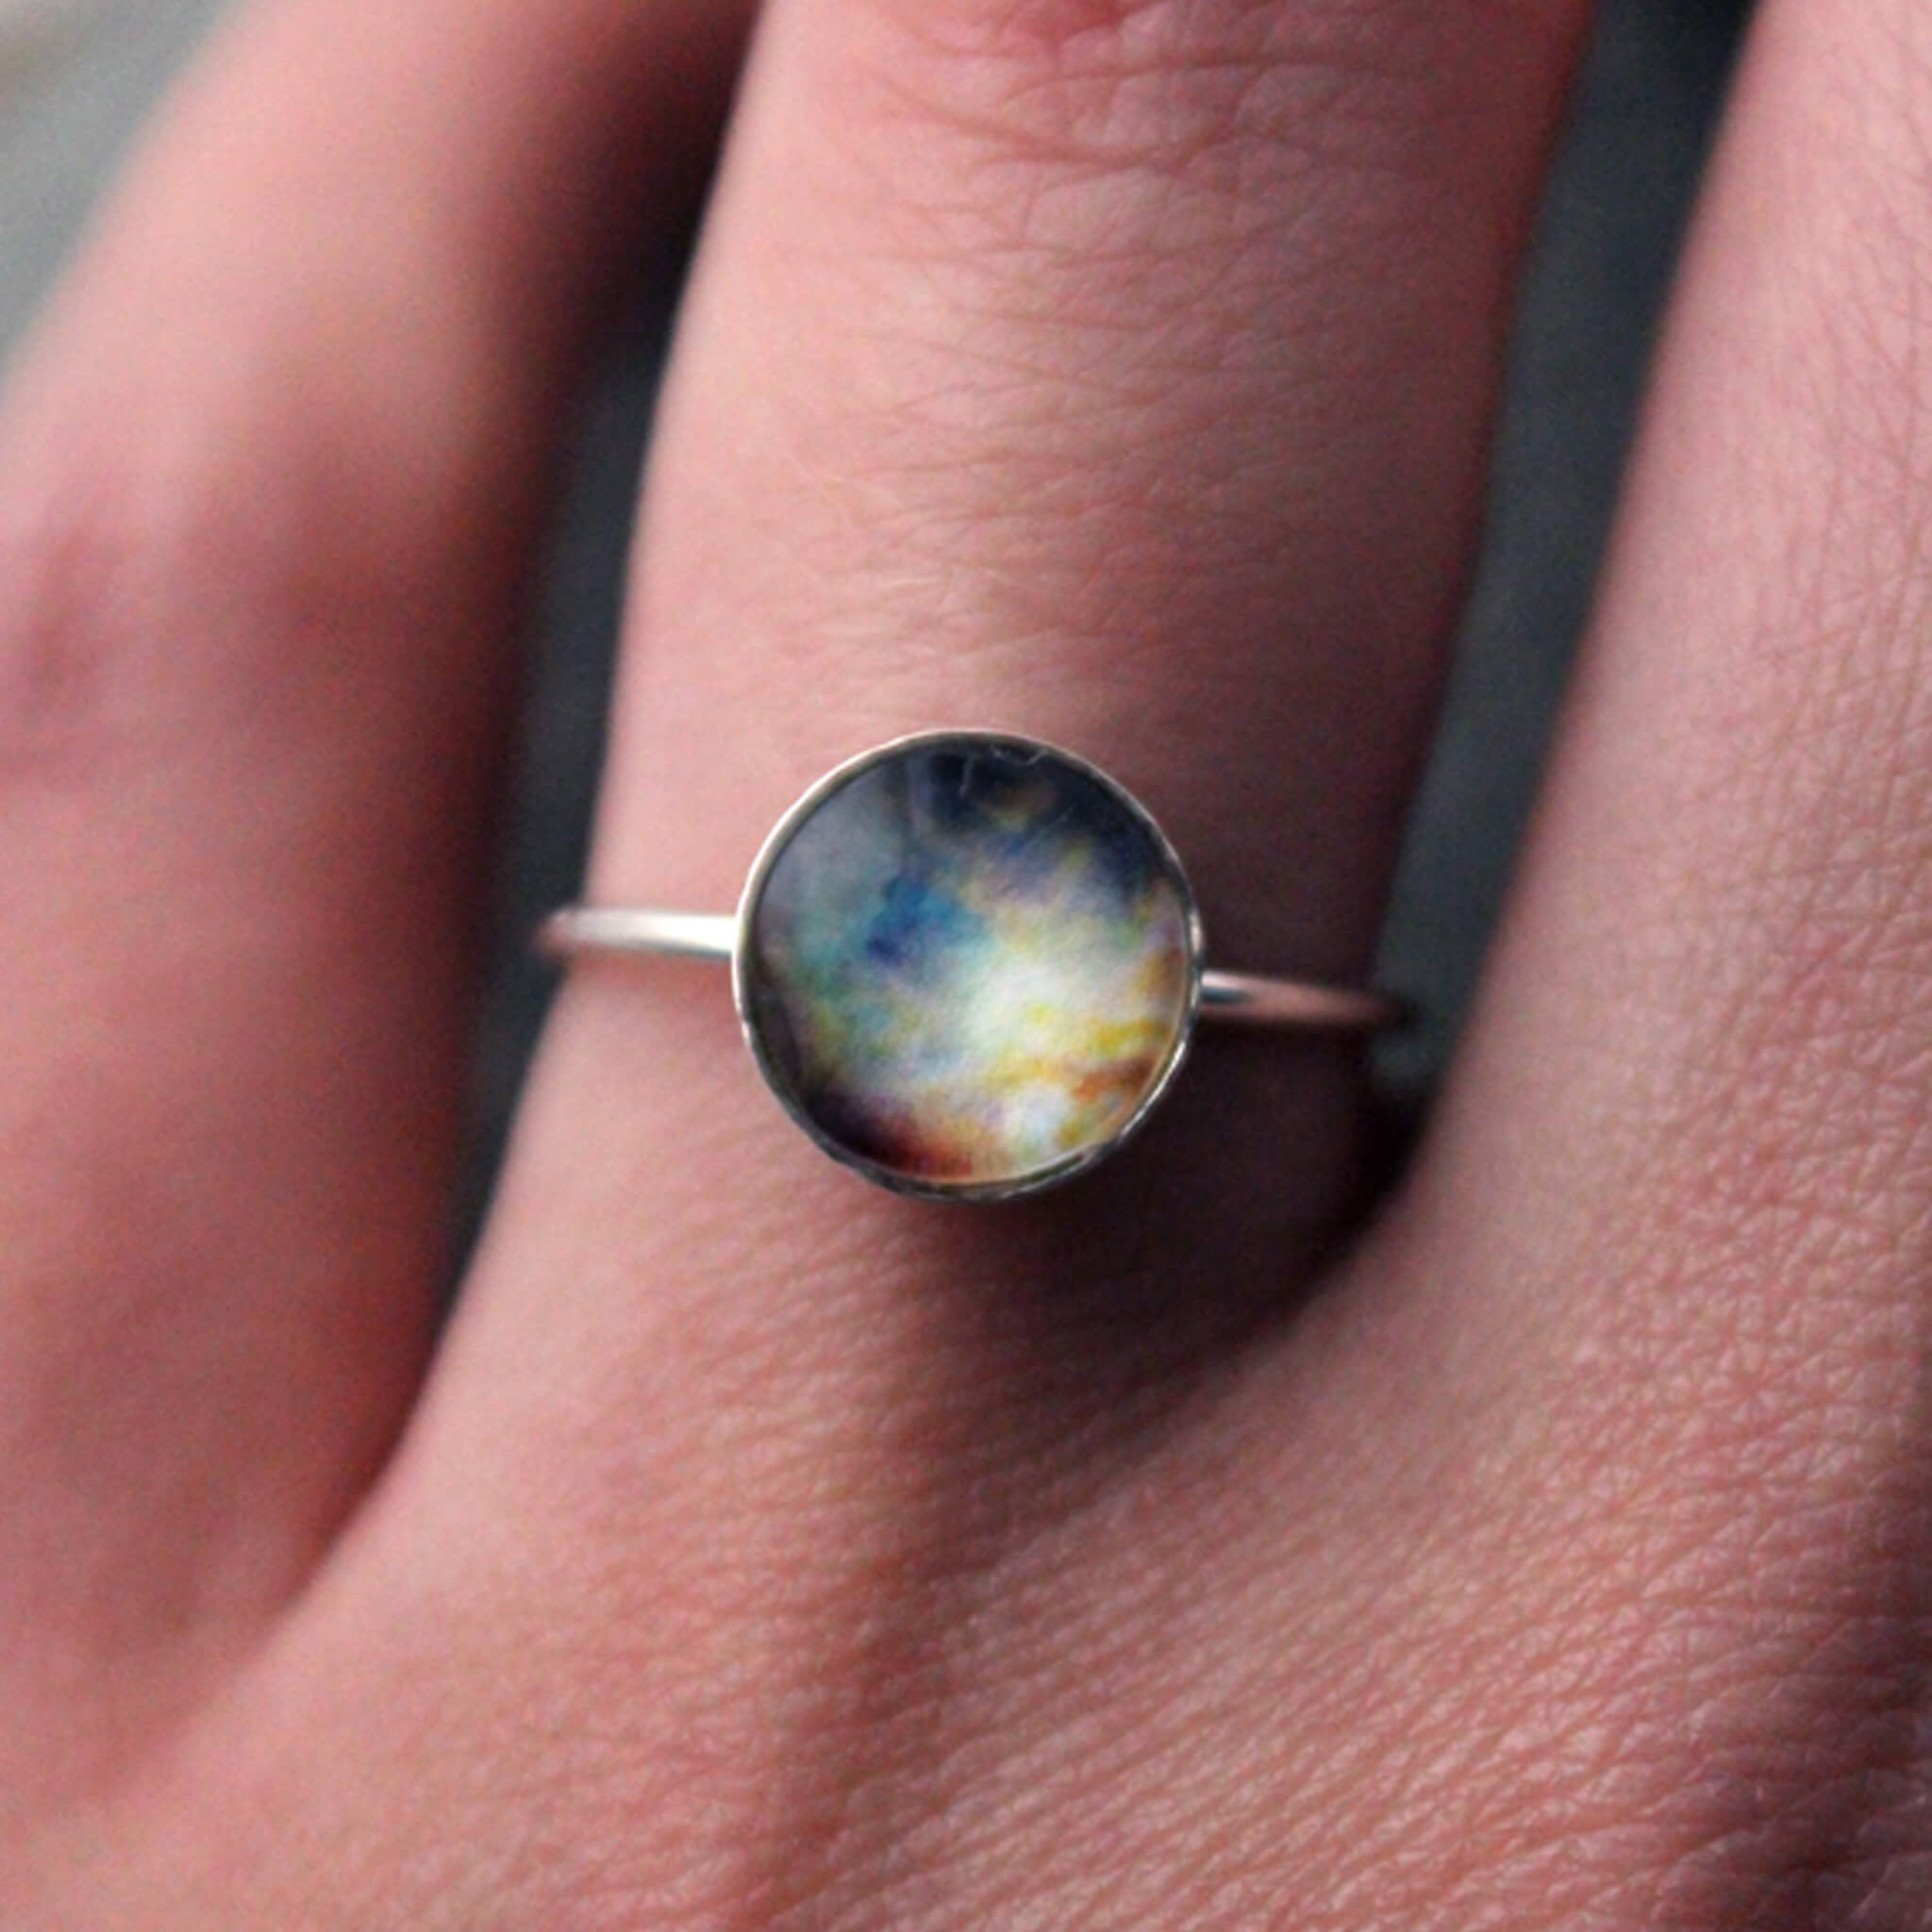 Custom Sterling Silver Space Ring, Made in Custom Sizes - Choose Your Galaxy Image, Outer Space nebula planet STEM Astronomy jewelry handmade by Yugen Tribe modeled